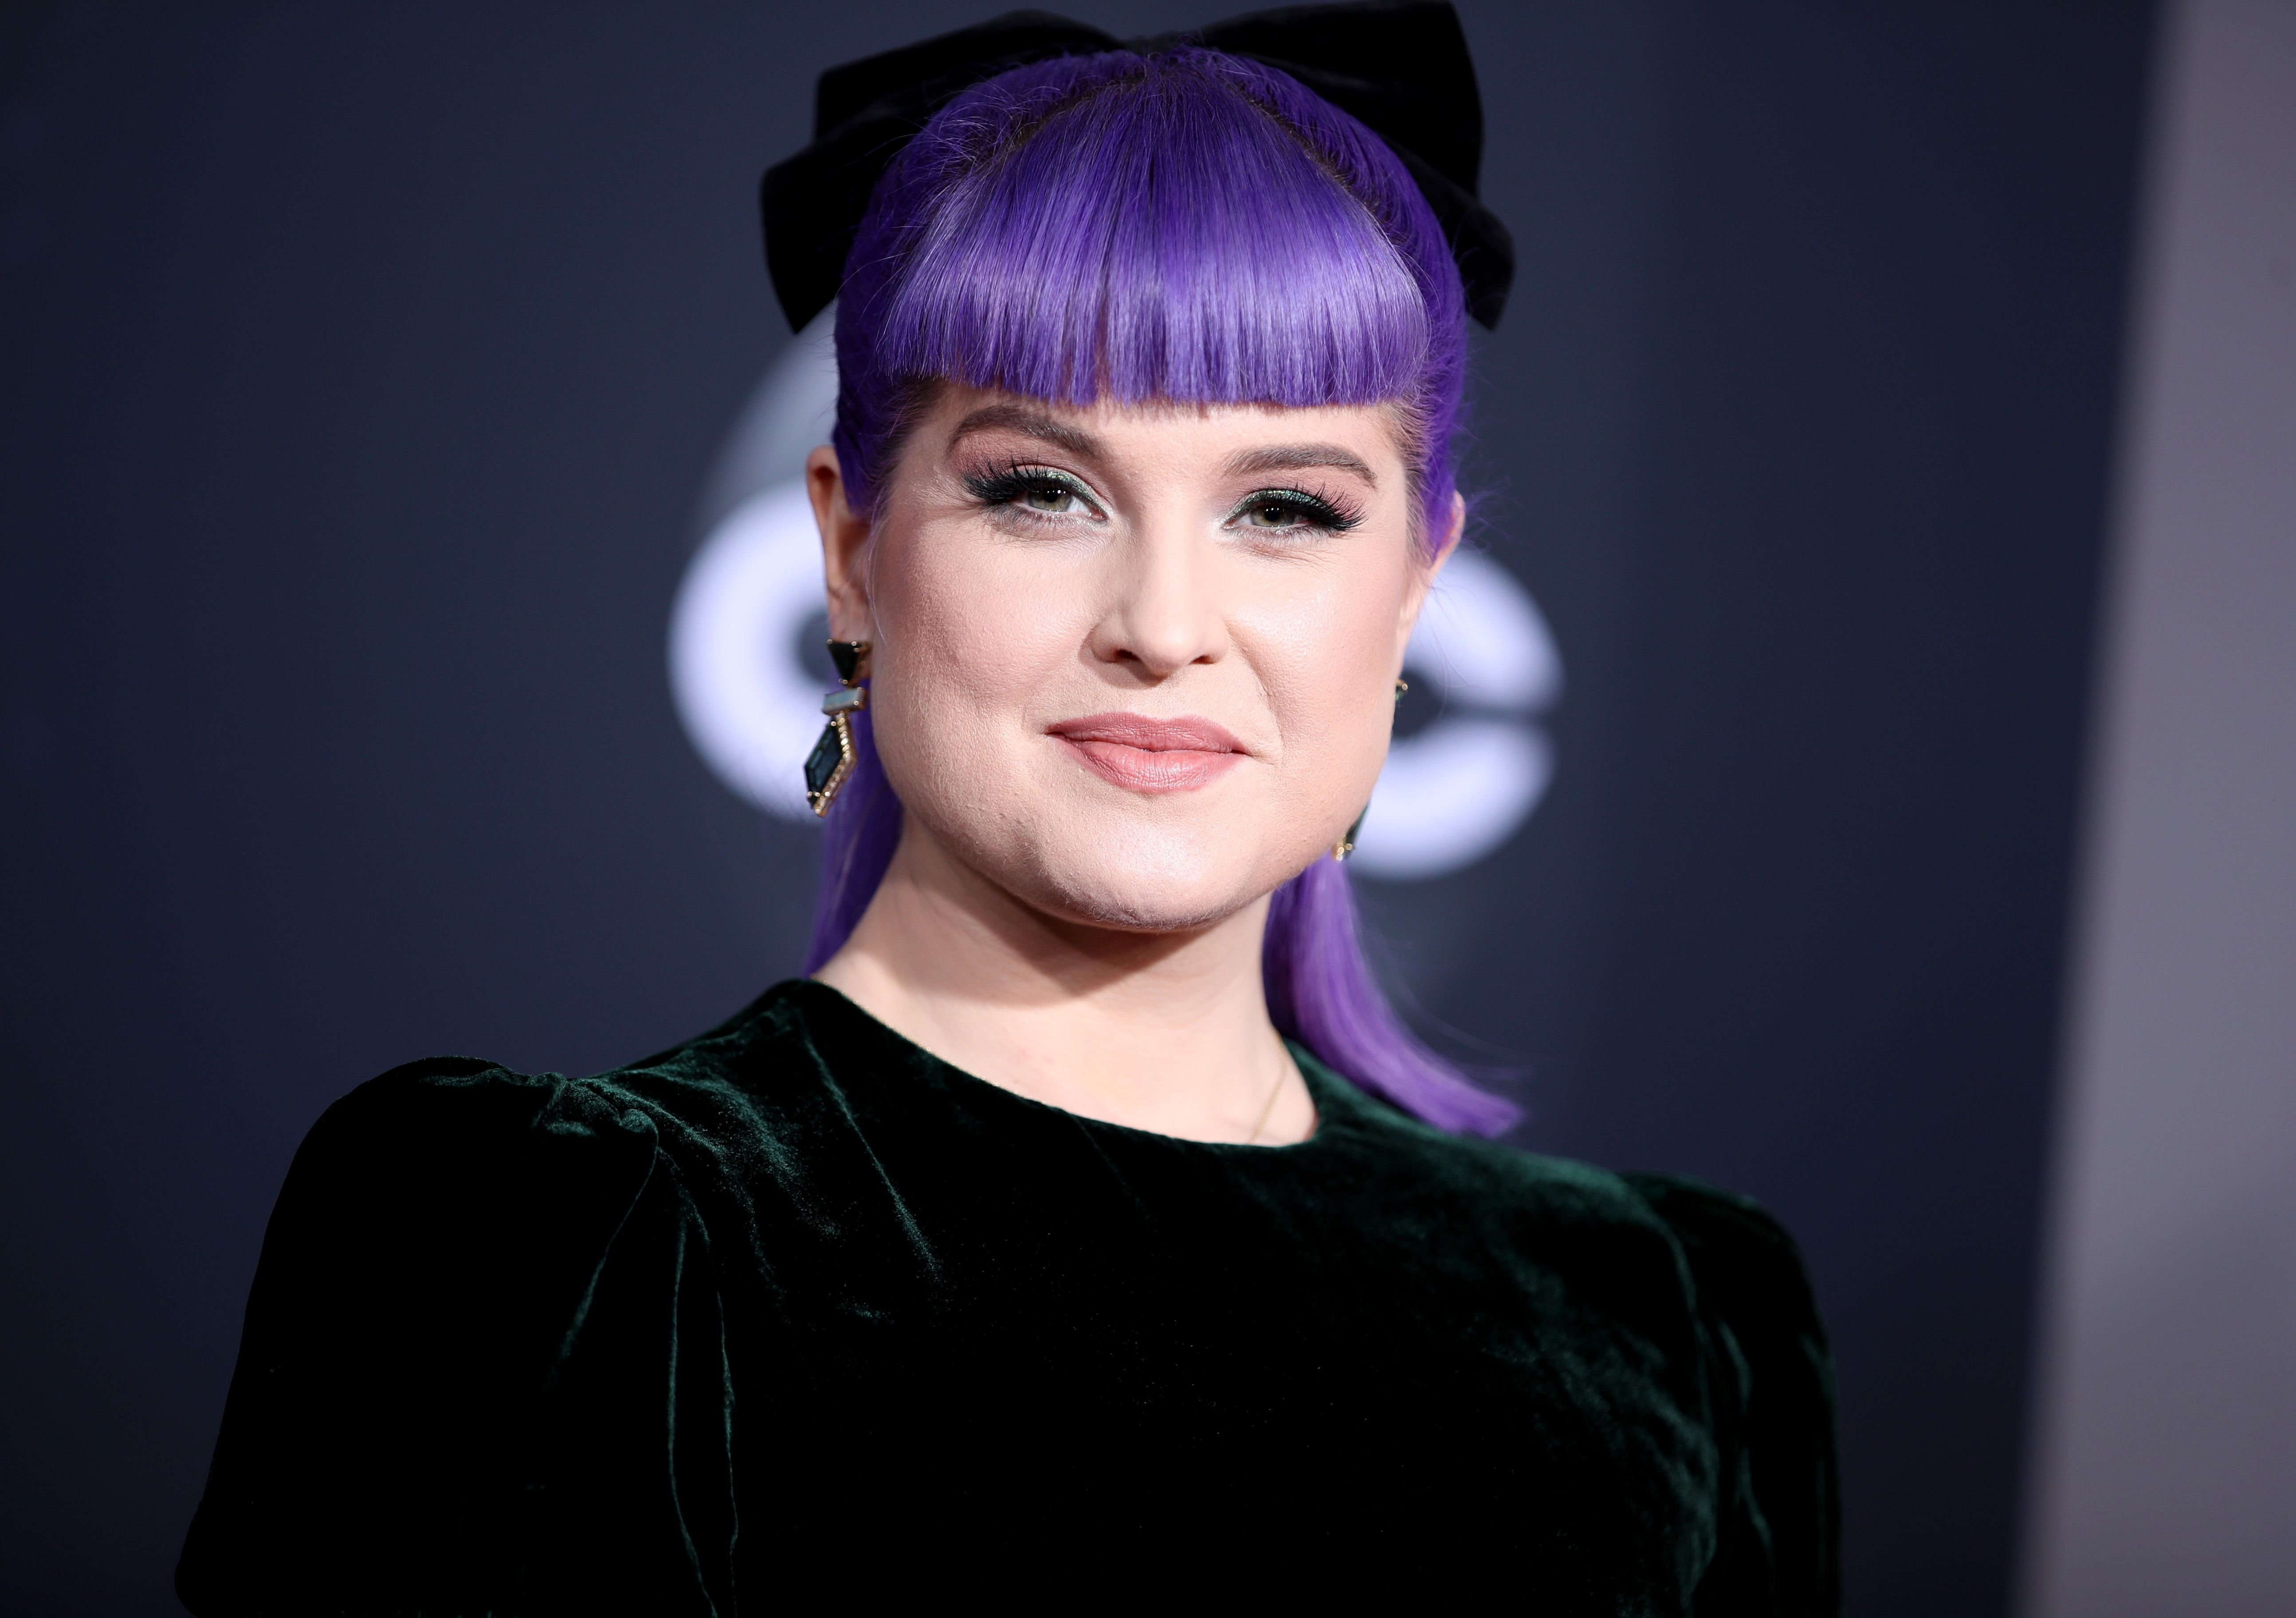 Kelly Osbourne at the 2019 American Music Awards at Microsoft Theater on November 24, 2019 in Los Angeles, California | Photo: Getty Images